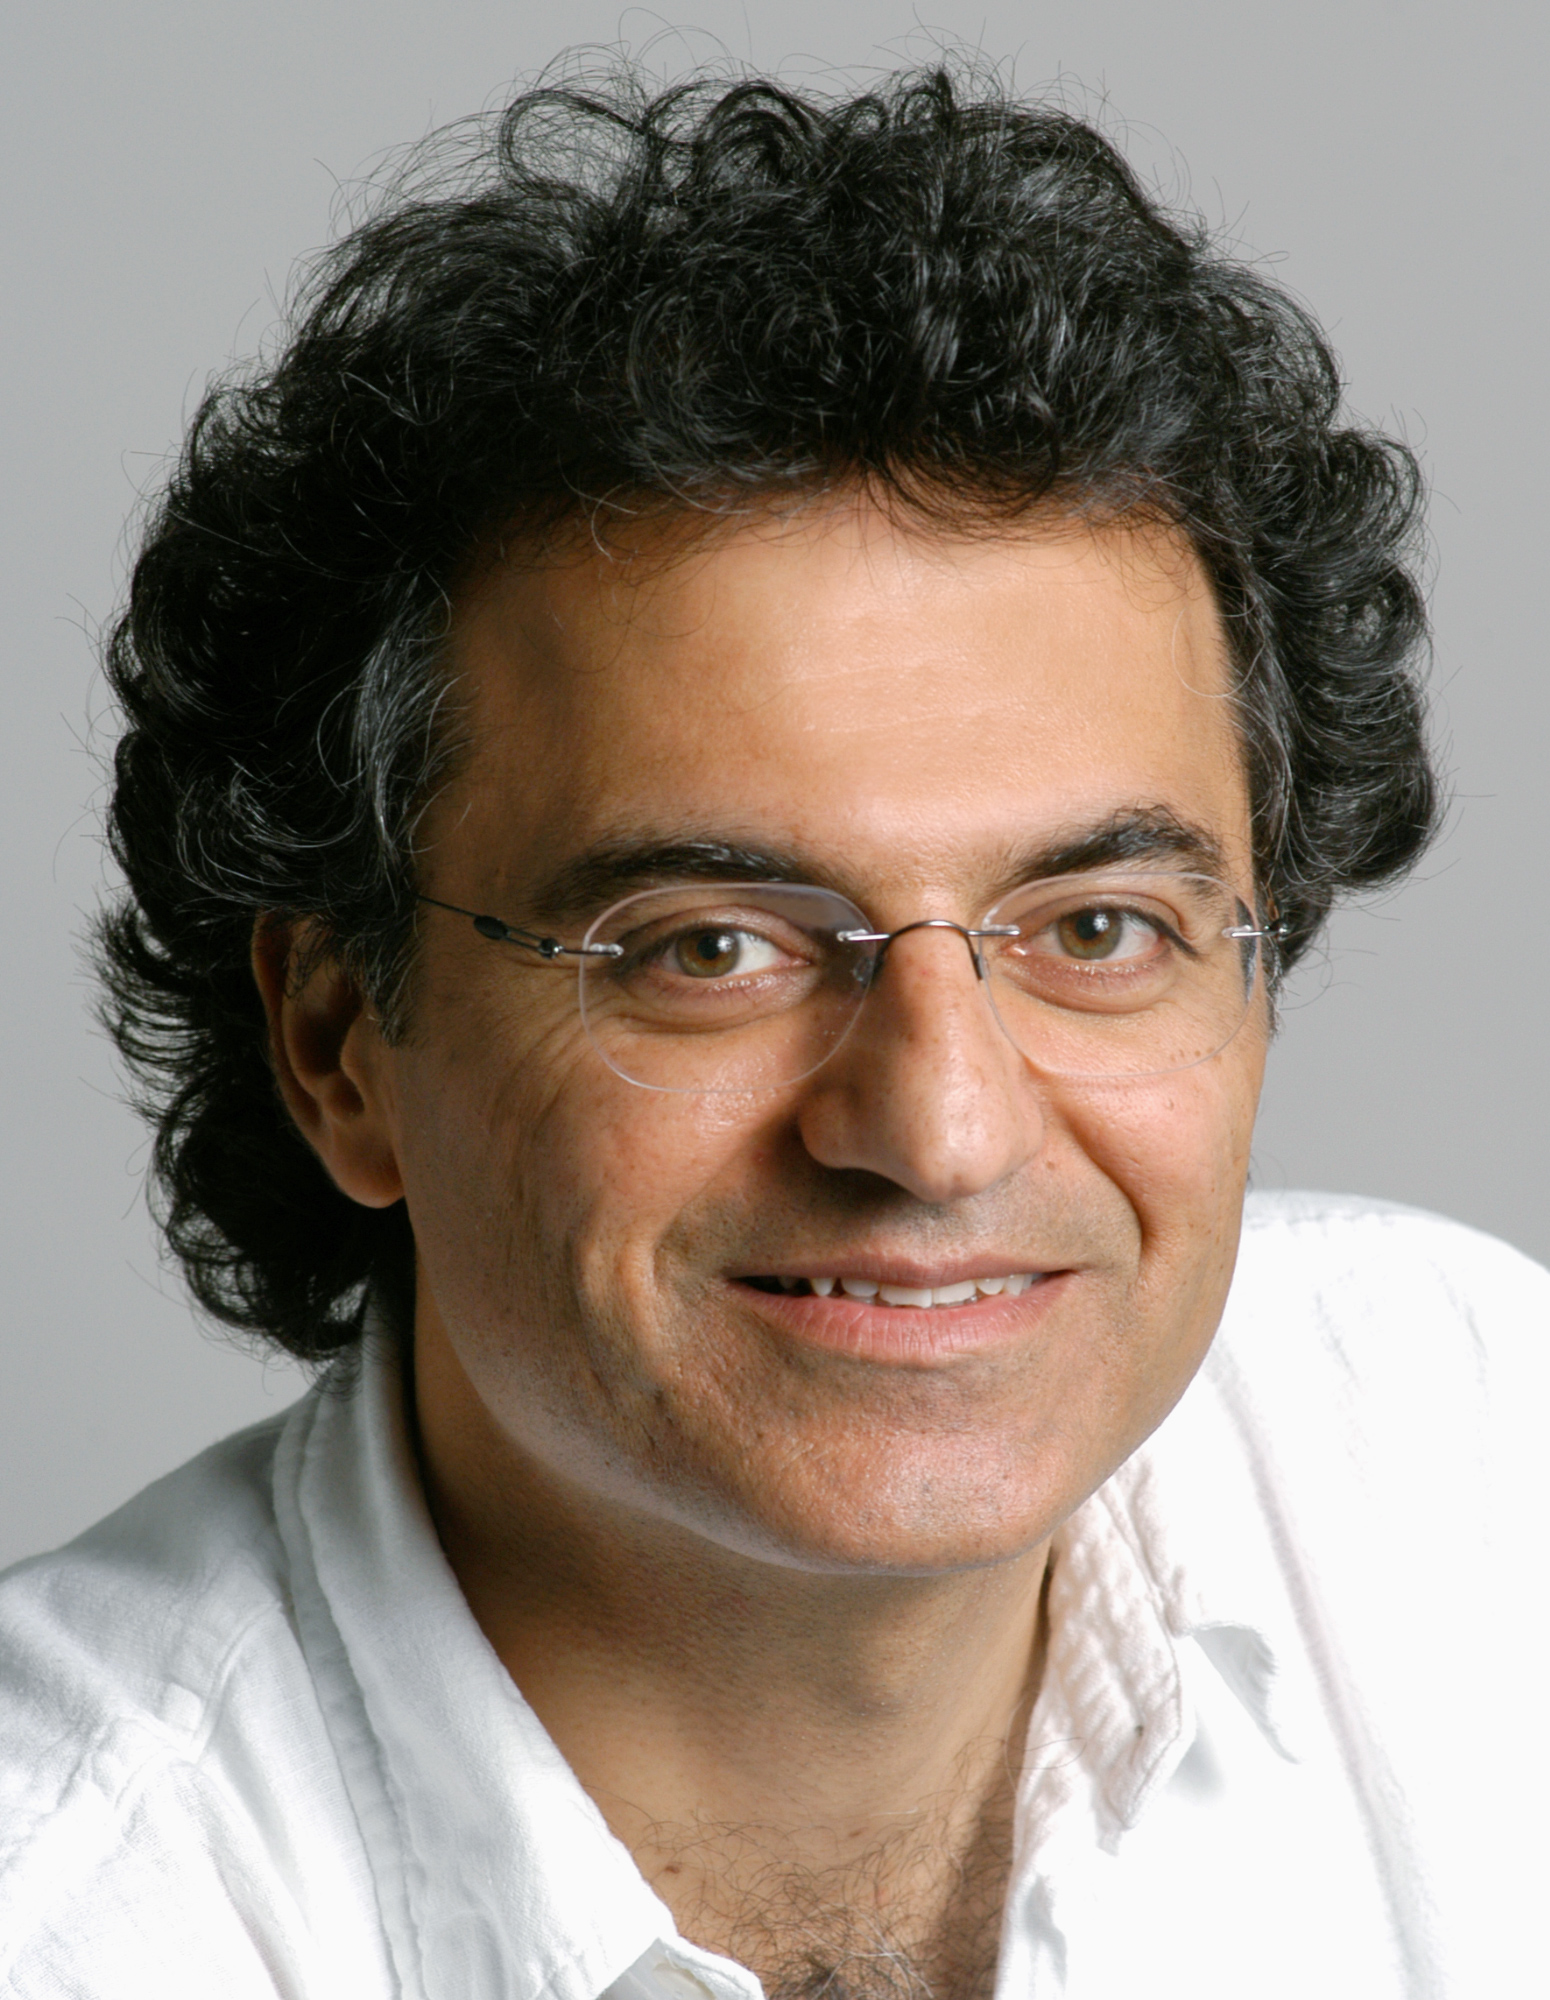 Photo of a man wearing thin wireframe glasses, a white shirt, short black curly hair, smiling and looking into the camera.